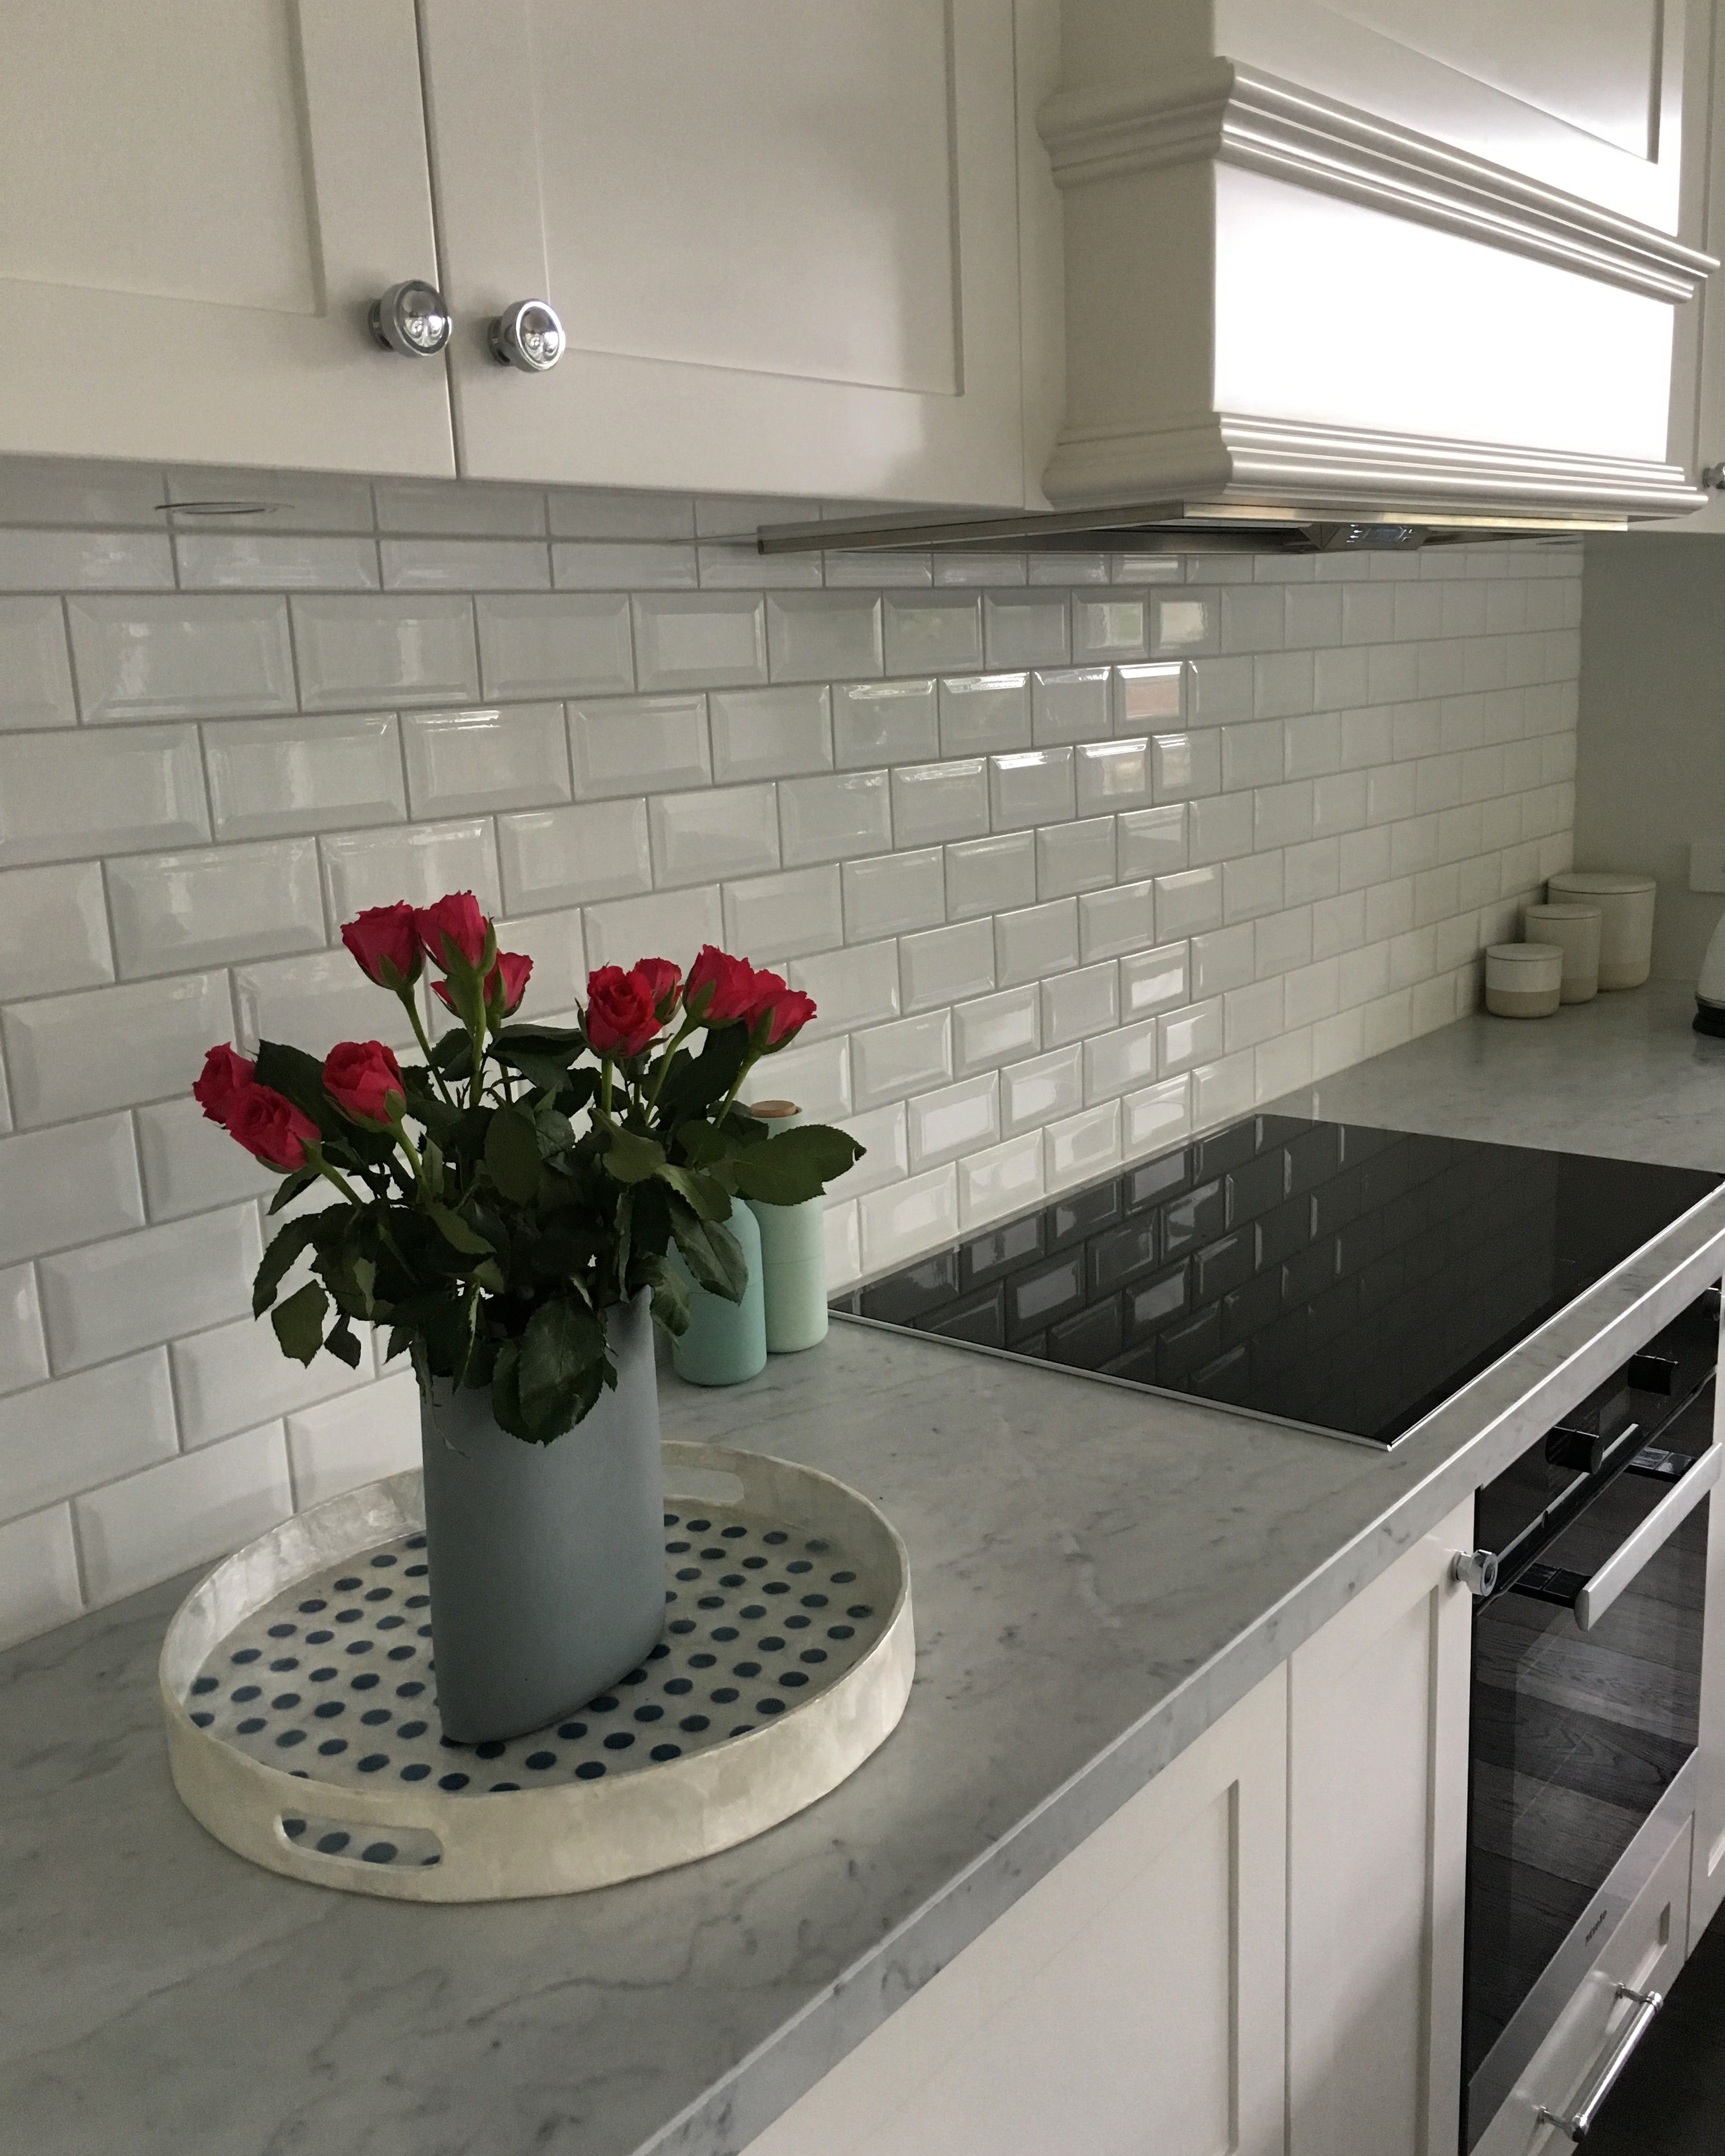 White Kitchen Tiles Grey Grout: Bevelled Subway Tiles In My Classic White And Grey Kitchen